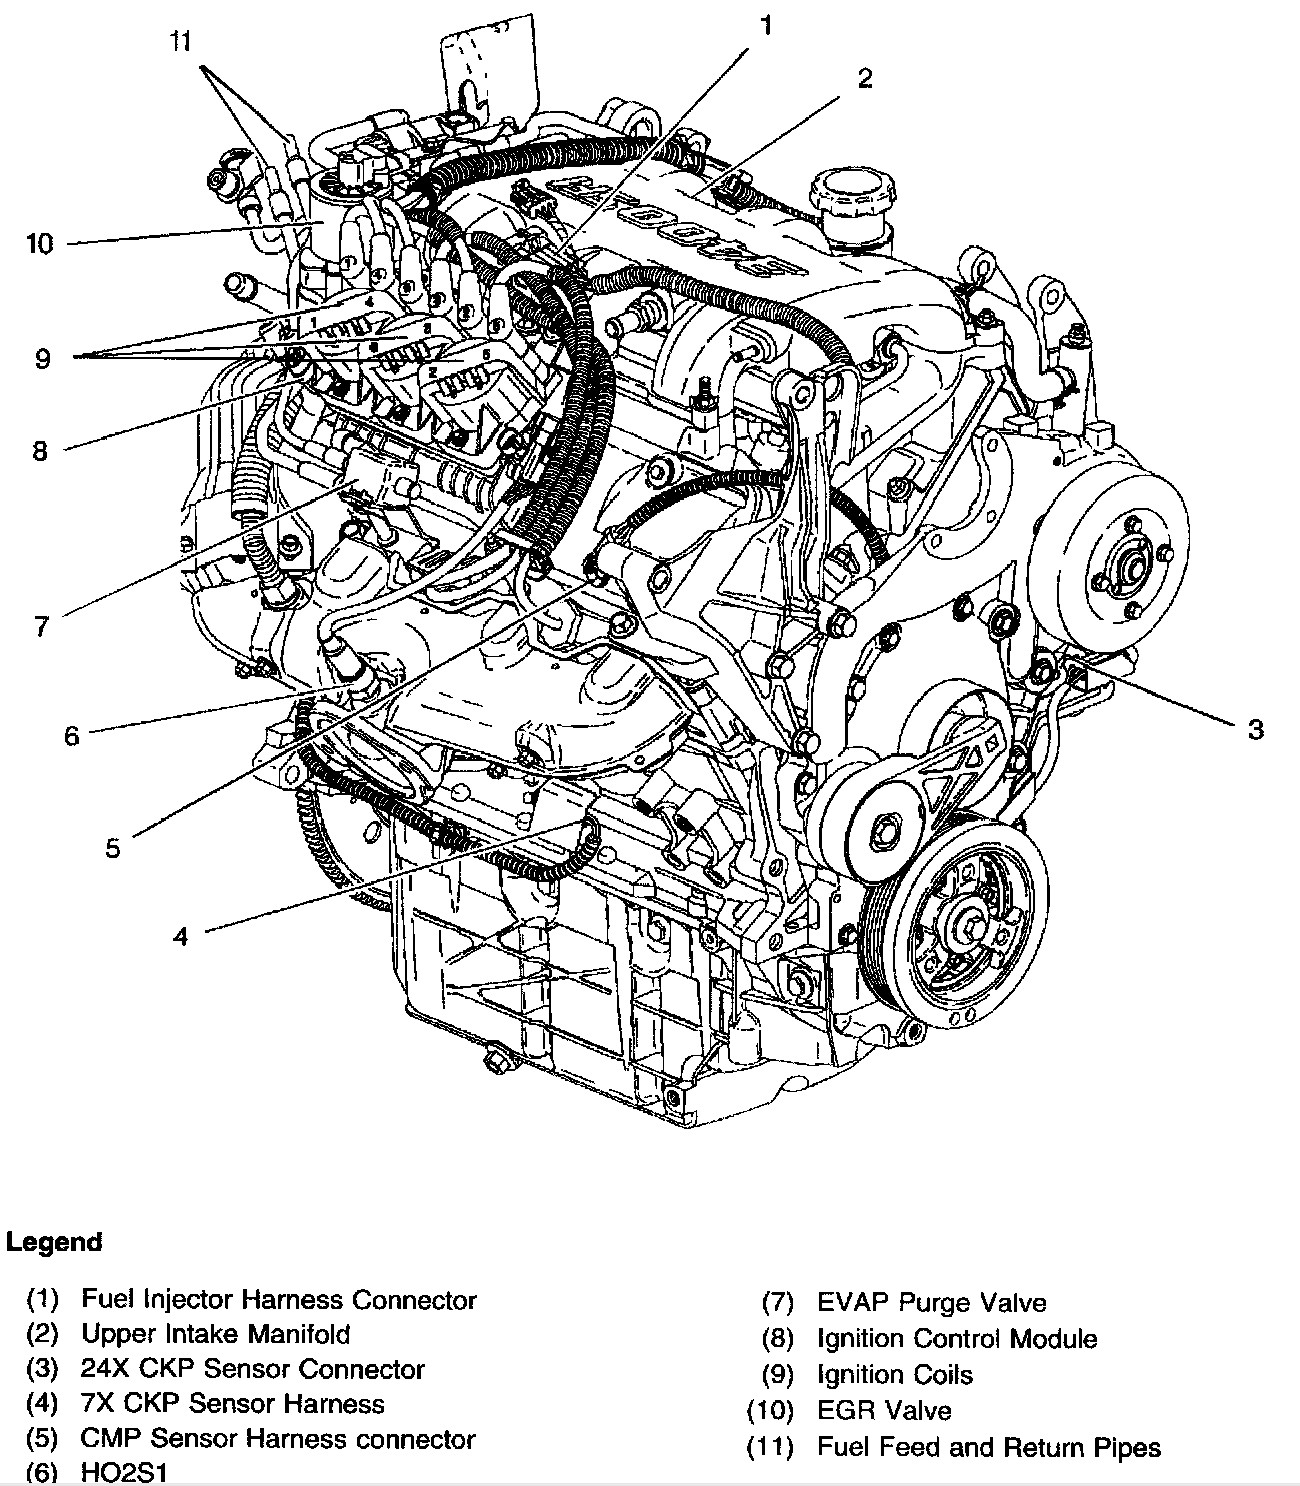 hight resolution of chevy 350 5 7l engine diagram wiring diagram centre besides chevy 350 truck engine diagram further 1990 chevy 350 engine